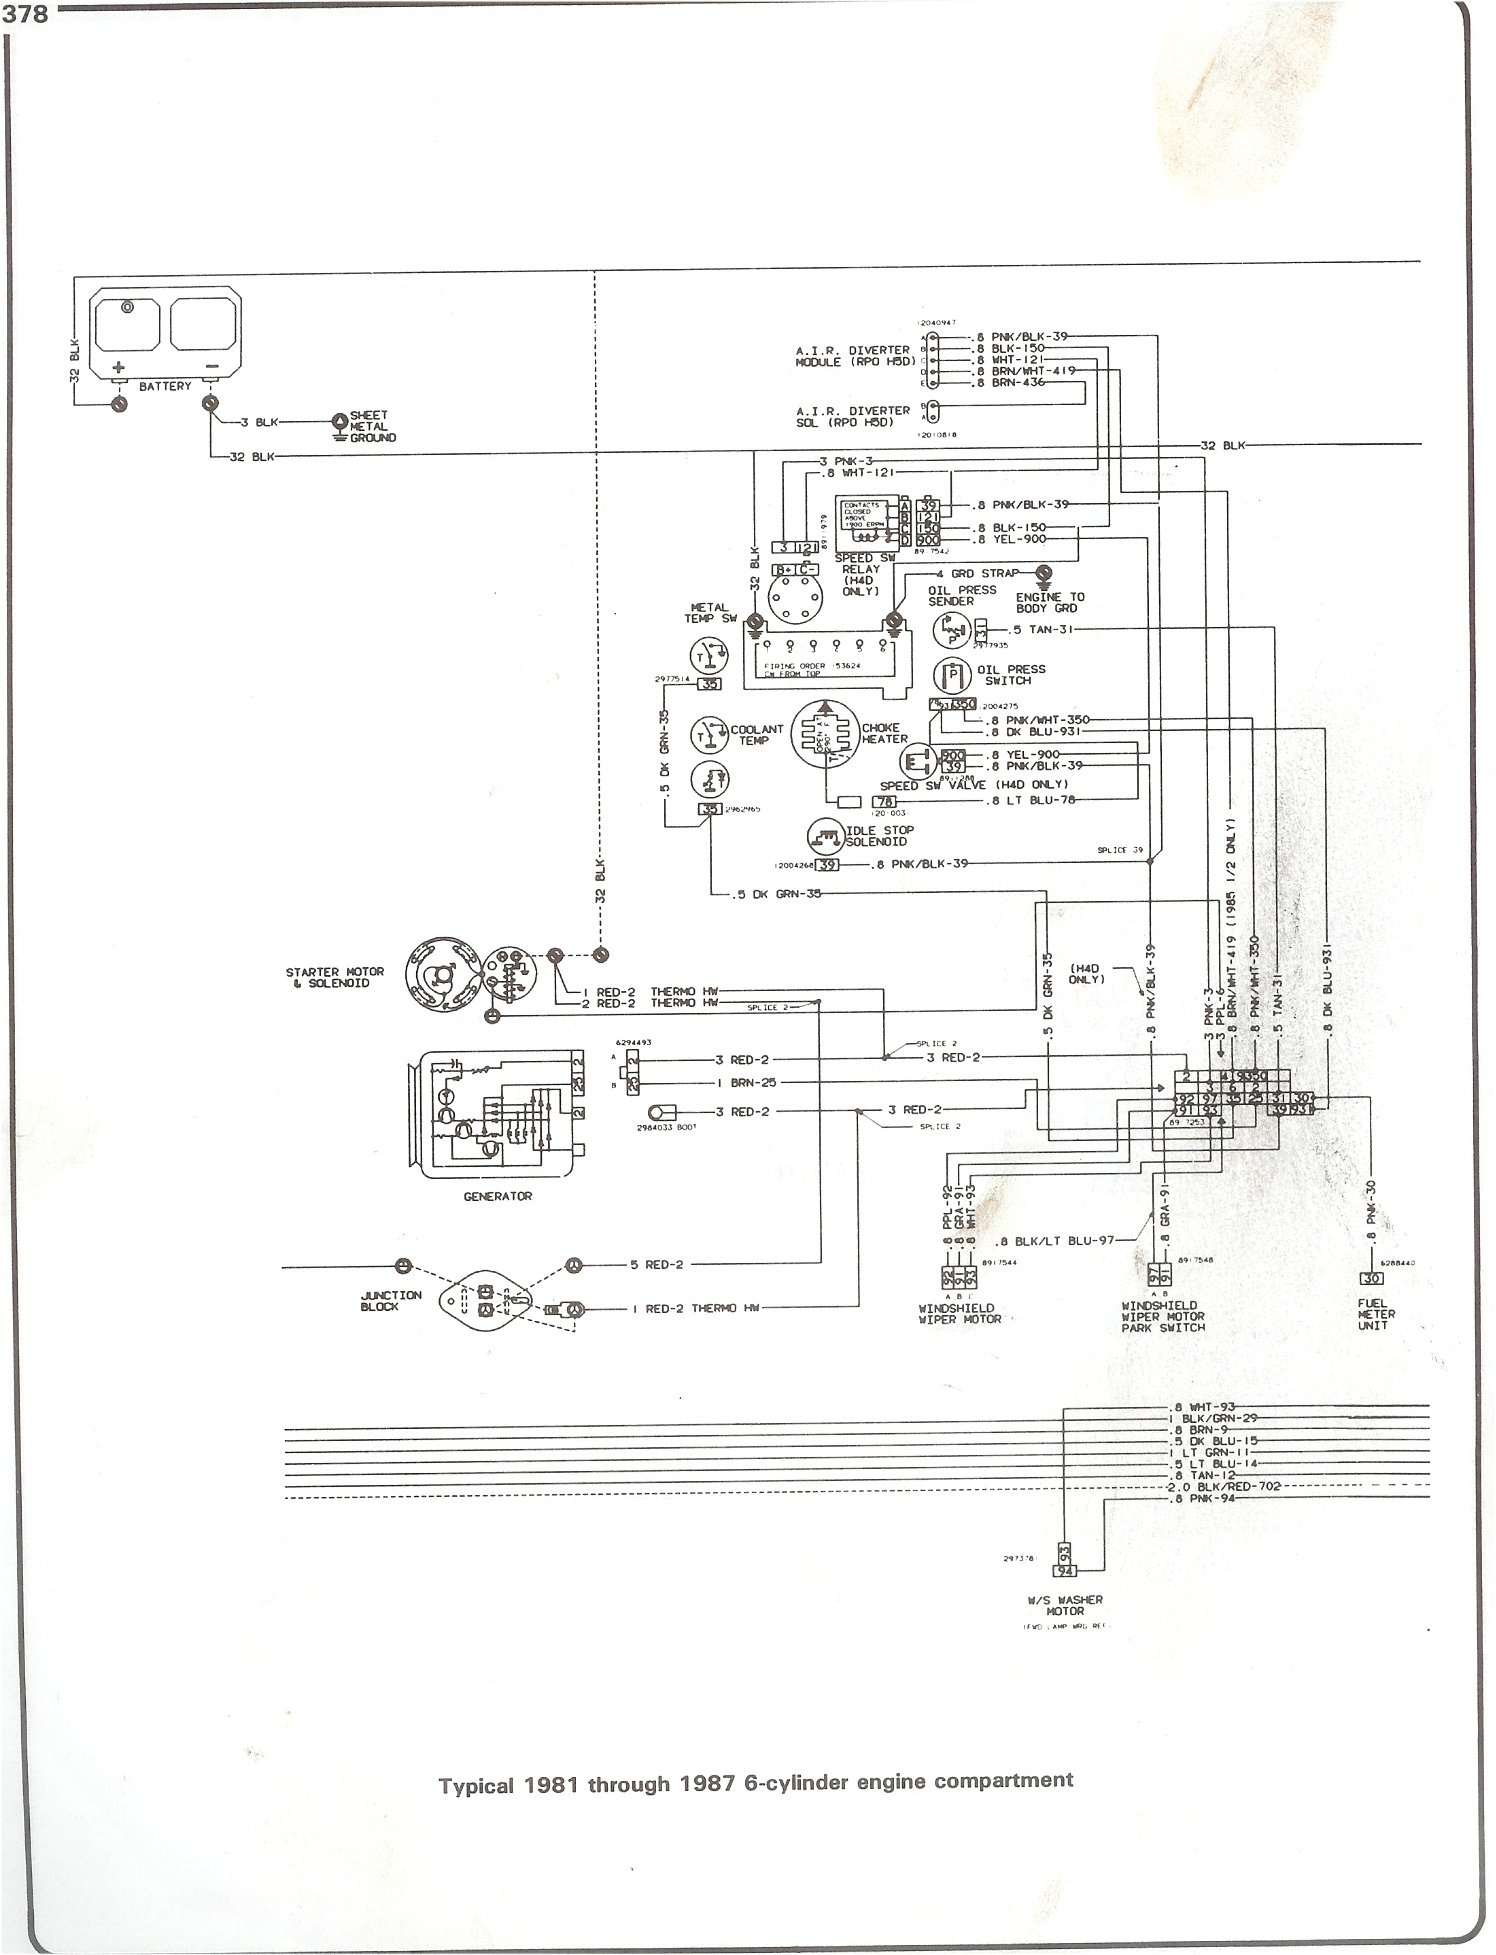 1973 Pick Up Chevy 350 Starter Wiring Diagram Libraries